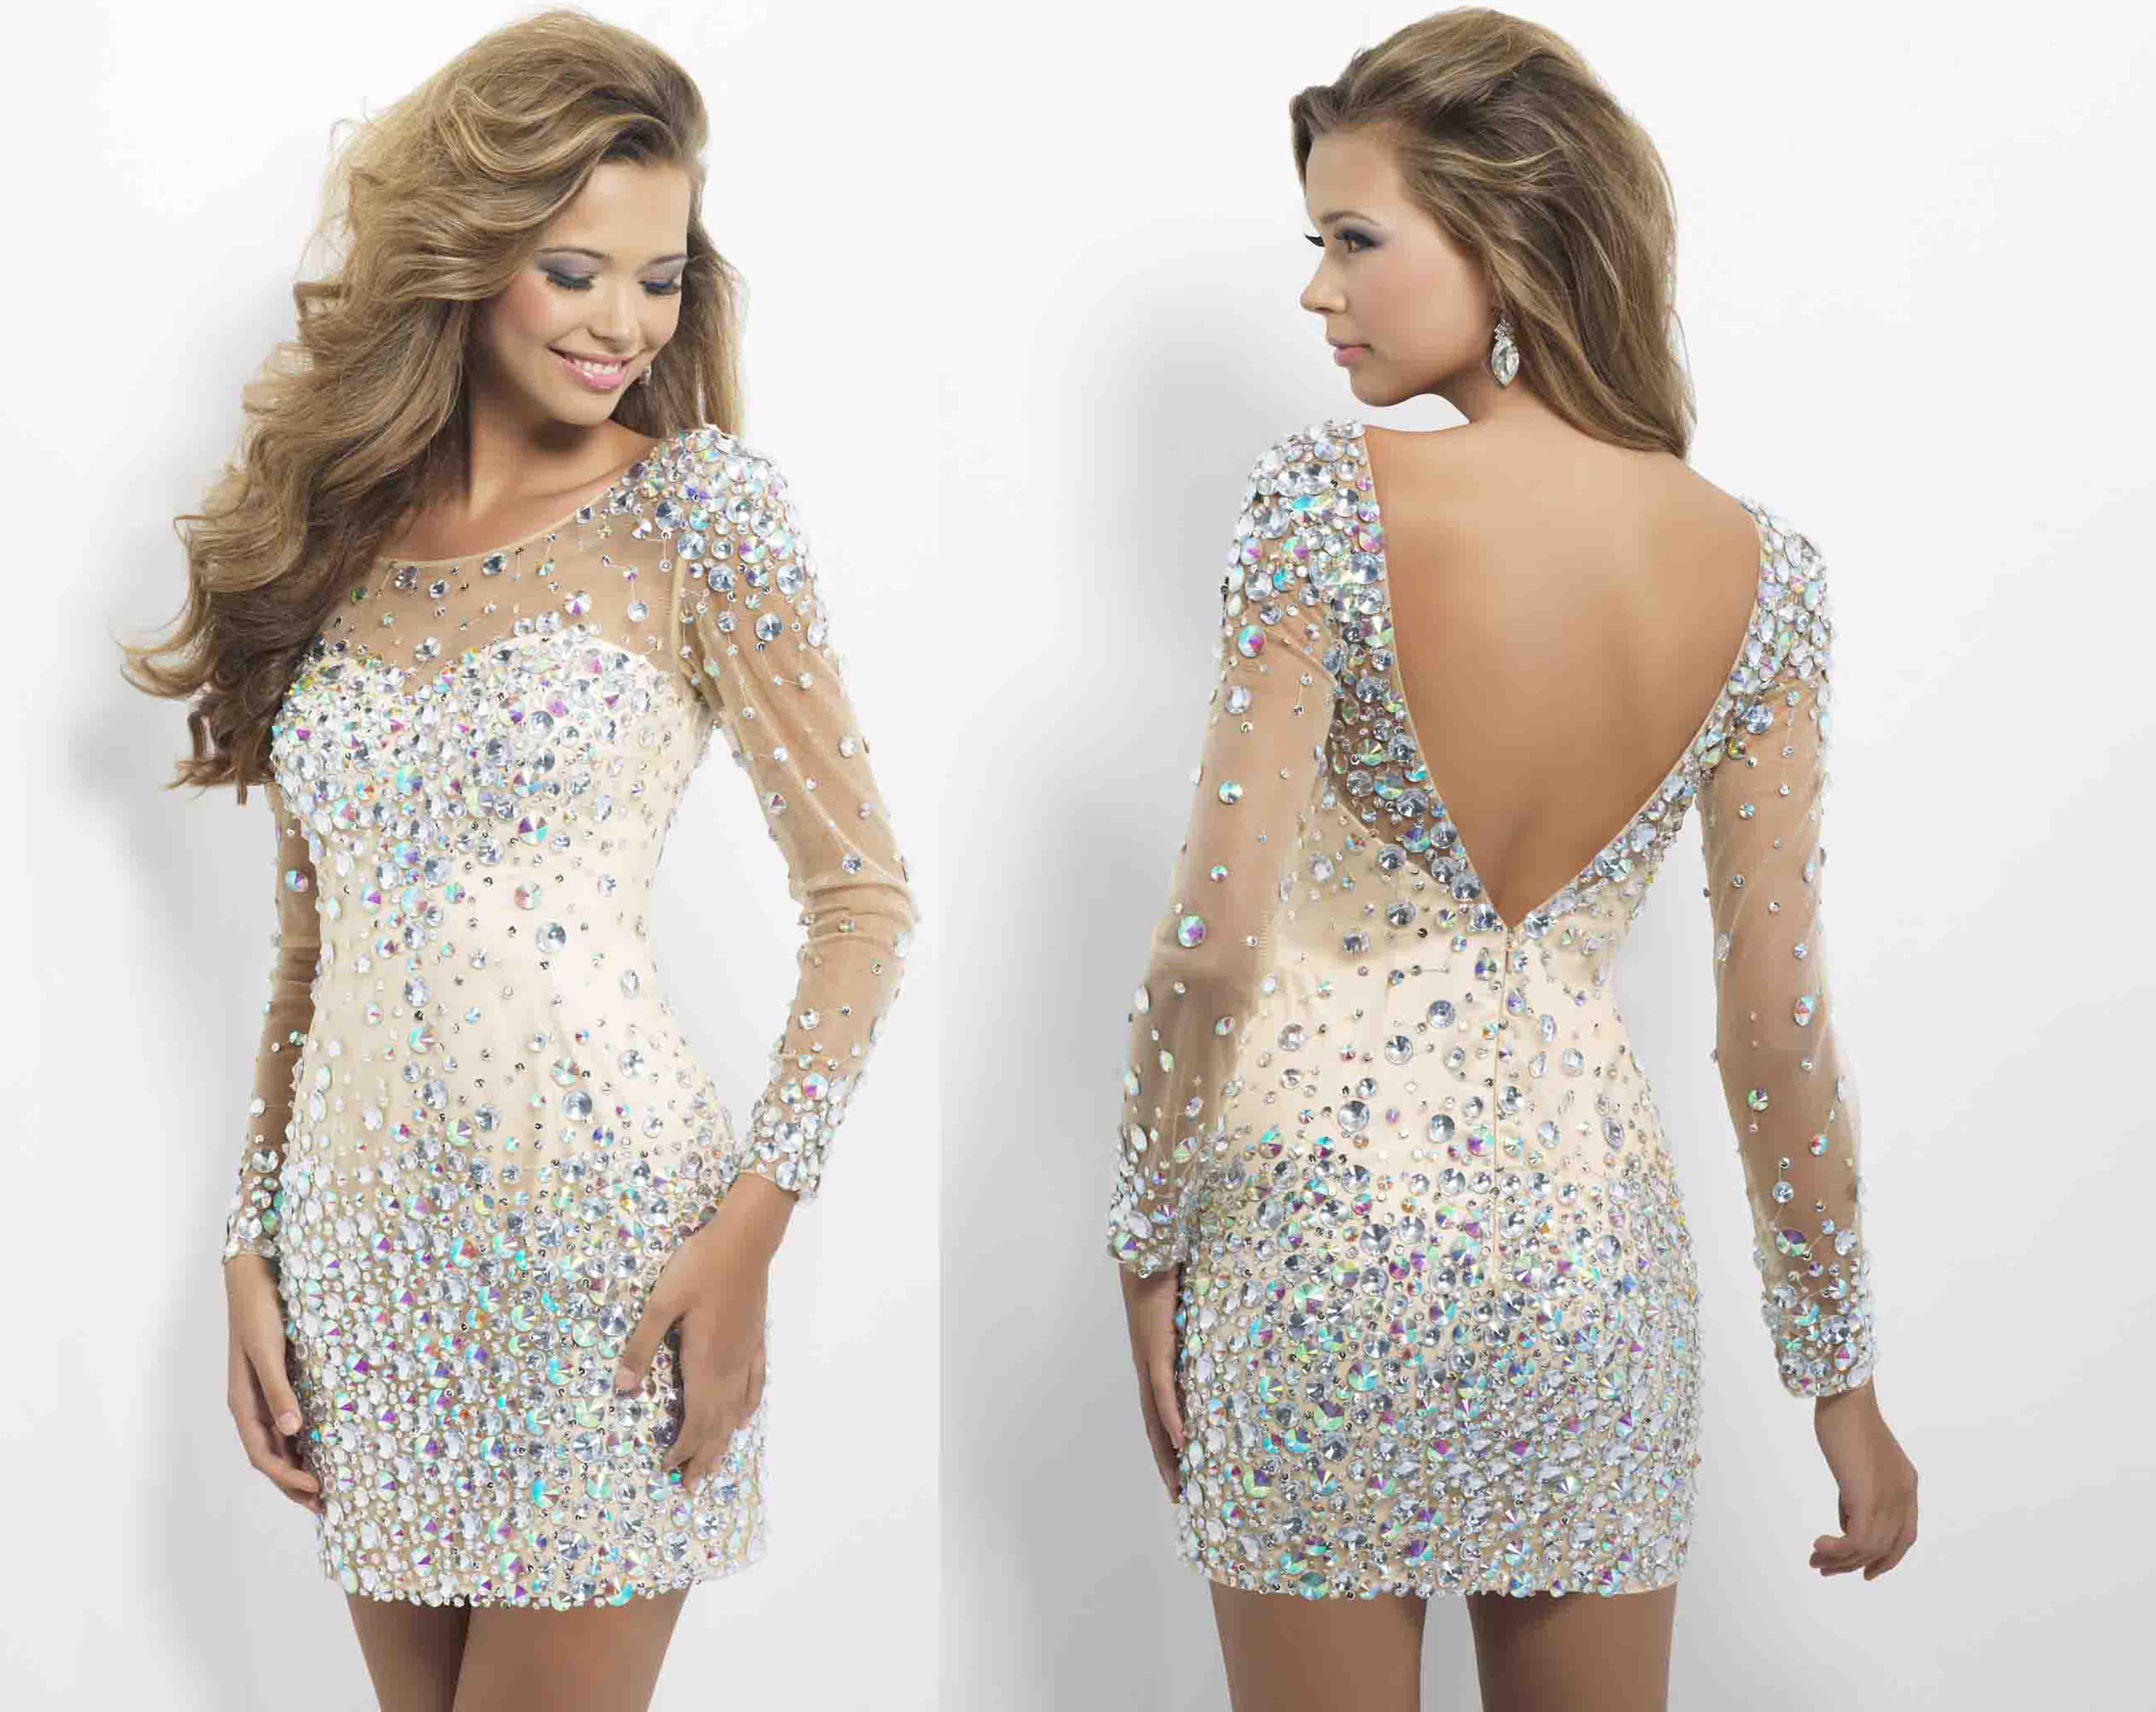 Where to Buy Long Homecoming Dresses Online? Where Can I Buy Long ...